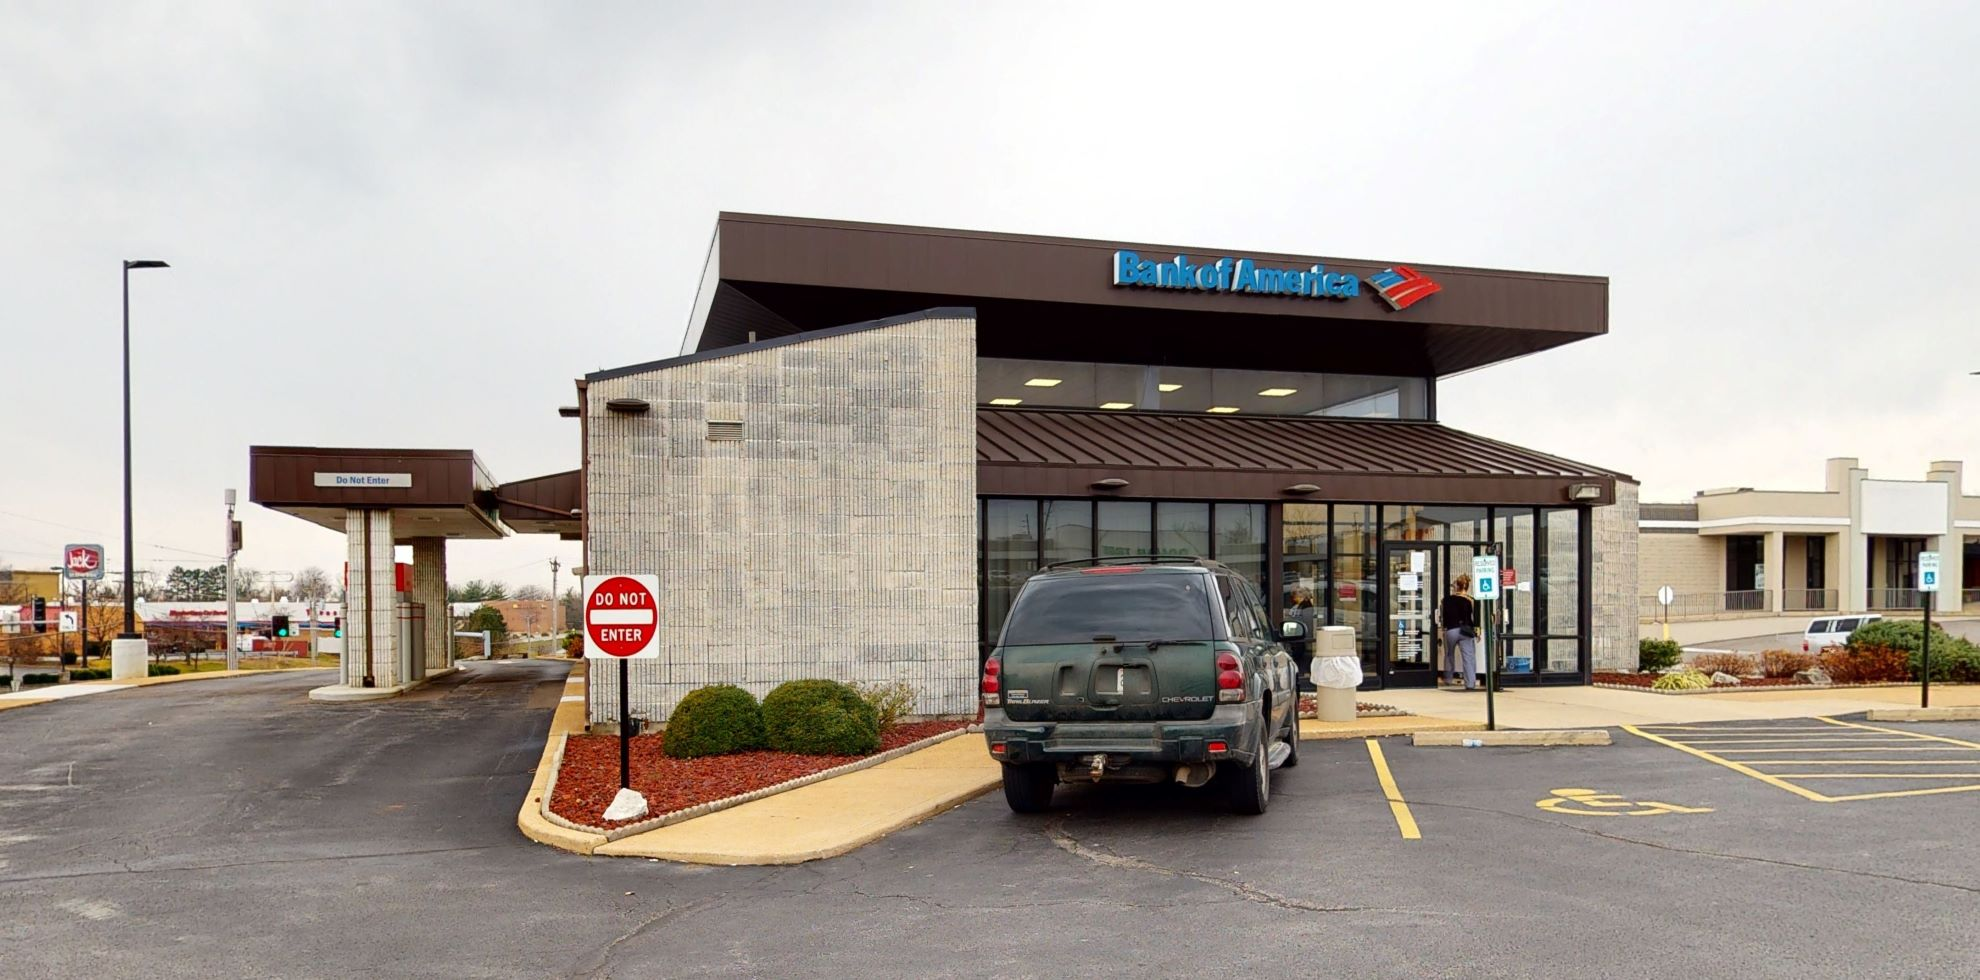 Bank of America financial center with drive-thru ATM   4495 Lemay Ferry Rd, Saint Louis, MO 63129